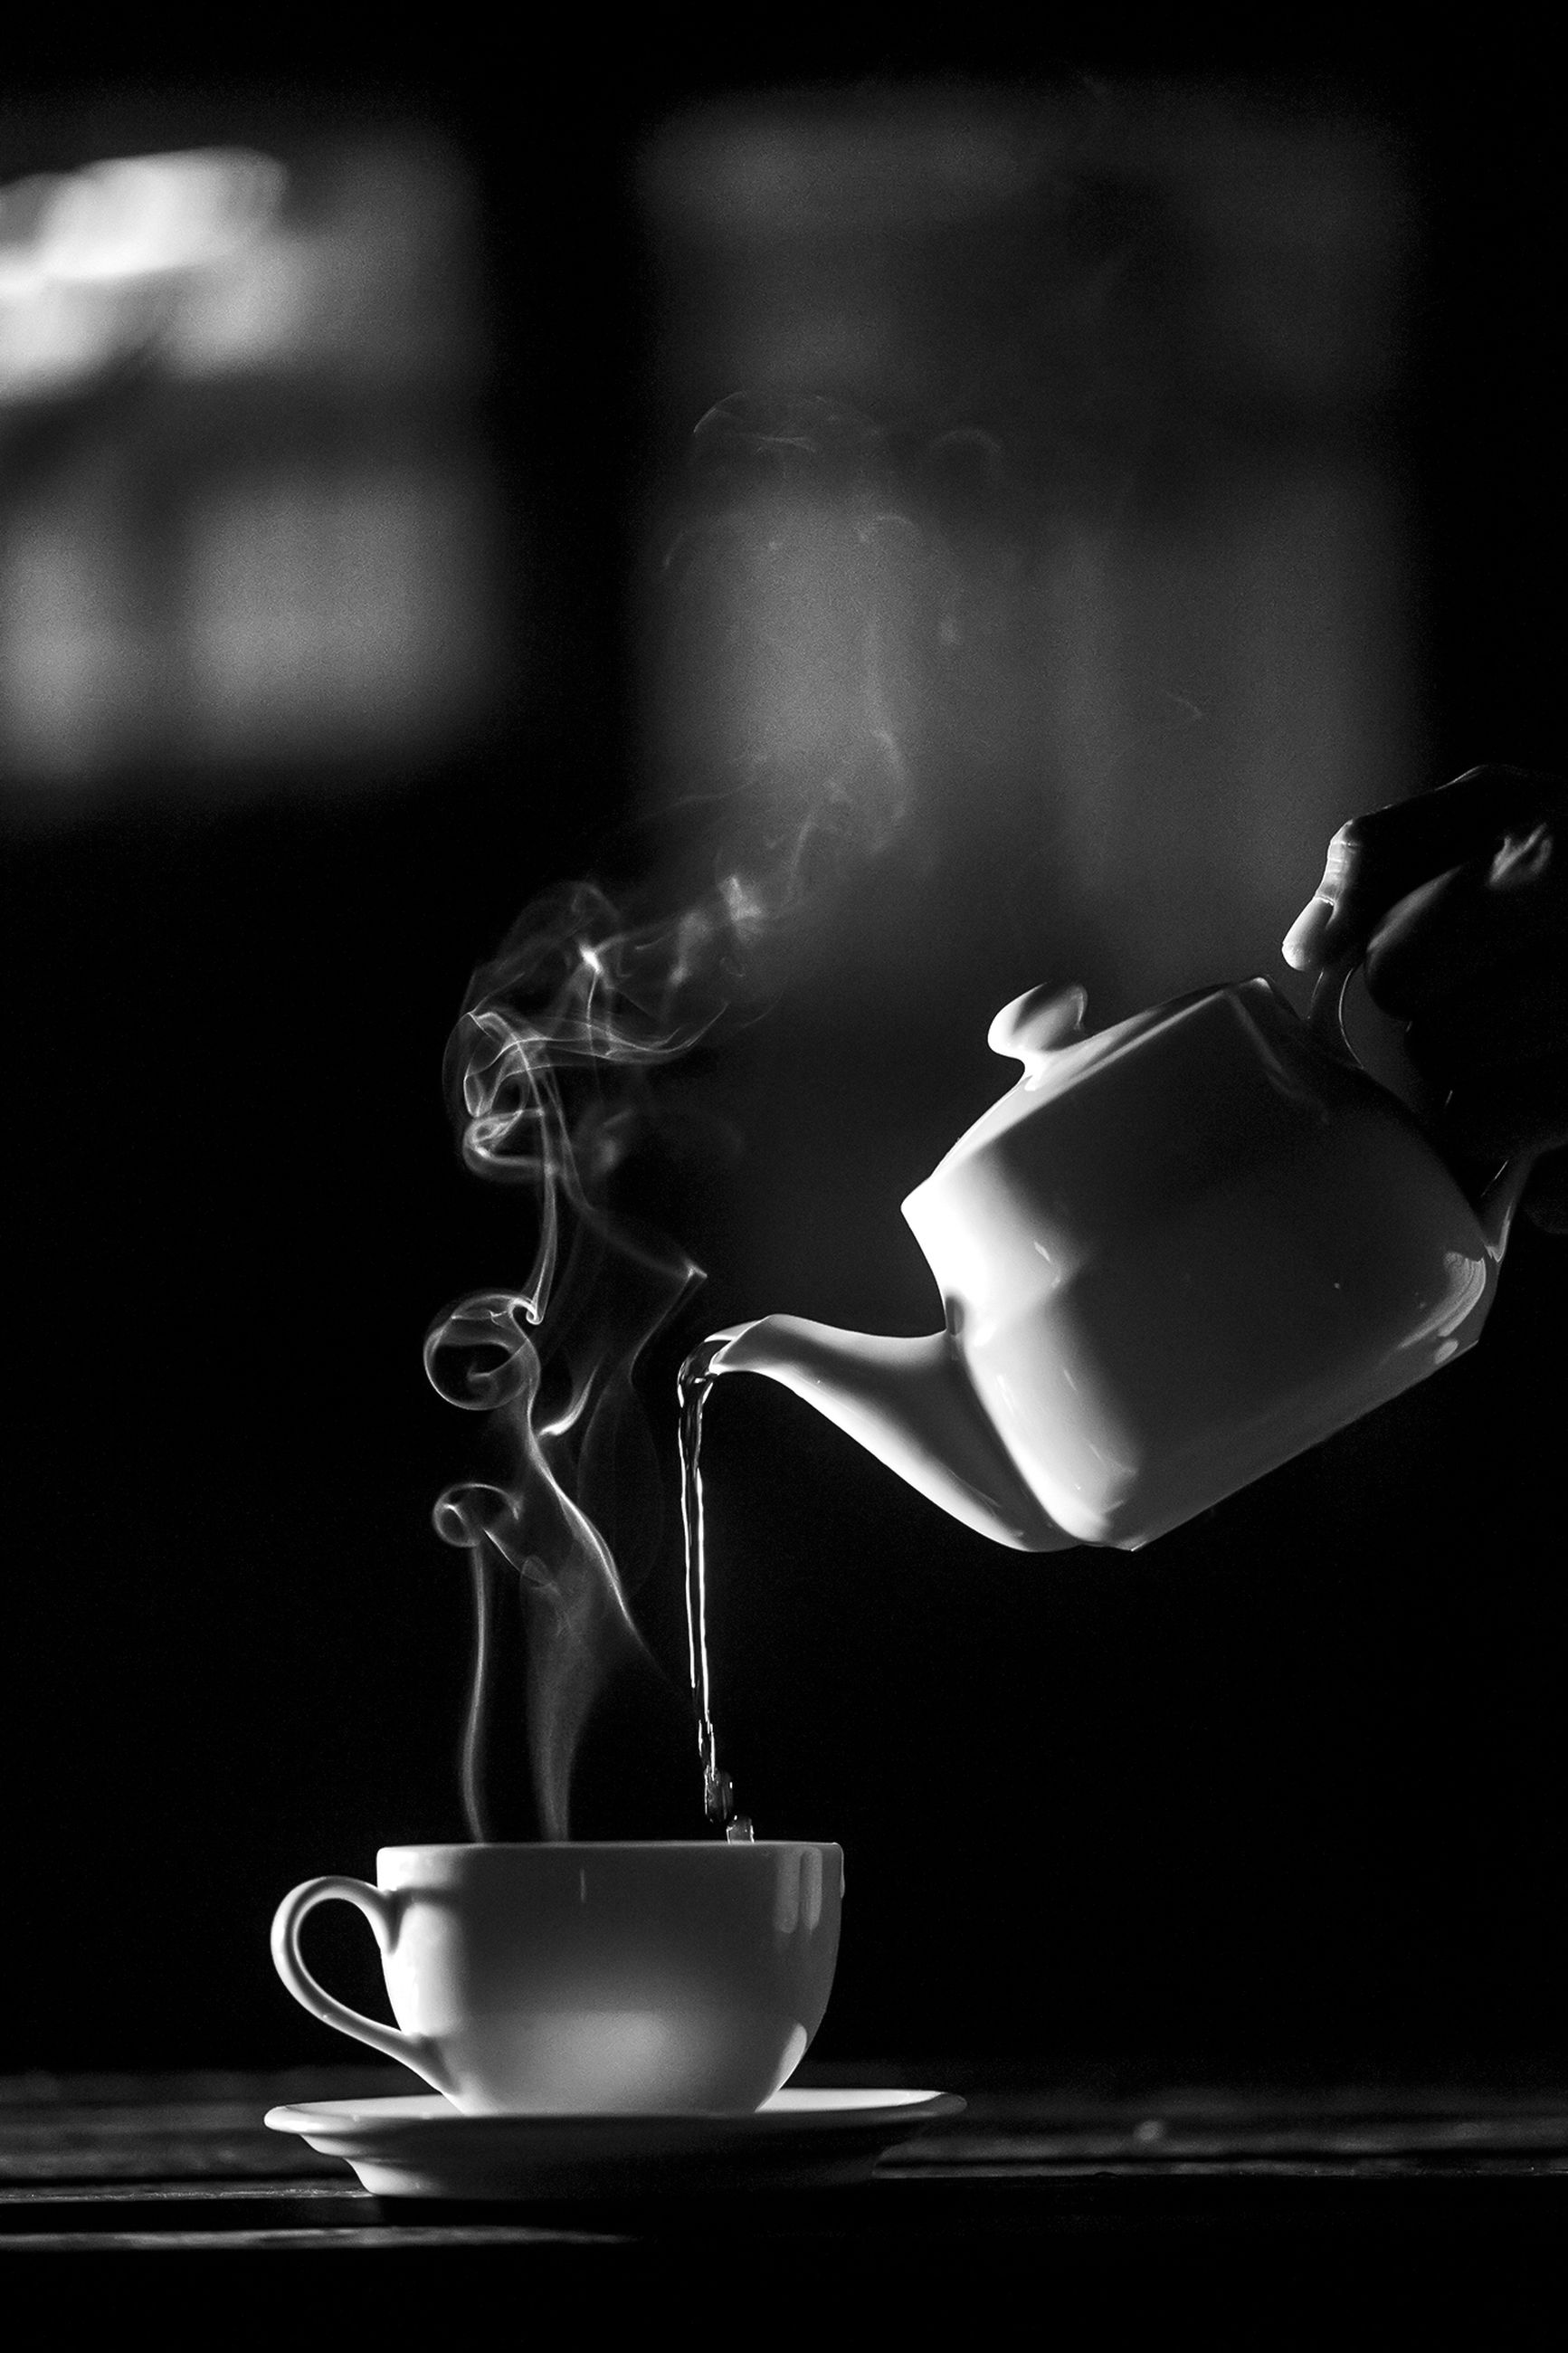 smoke - physical structure, drink, steam, food and drink, indoors, refreshment, heat - temperature, cup, coffee, focus on foreground, motion, mug, coffee - drink, coffee cup, hot drink, social issues, tea, holding, tea - hot drink, preparation, crockery, tea cup